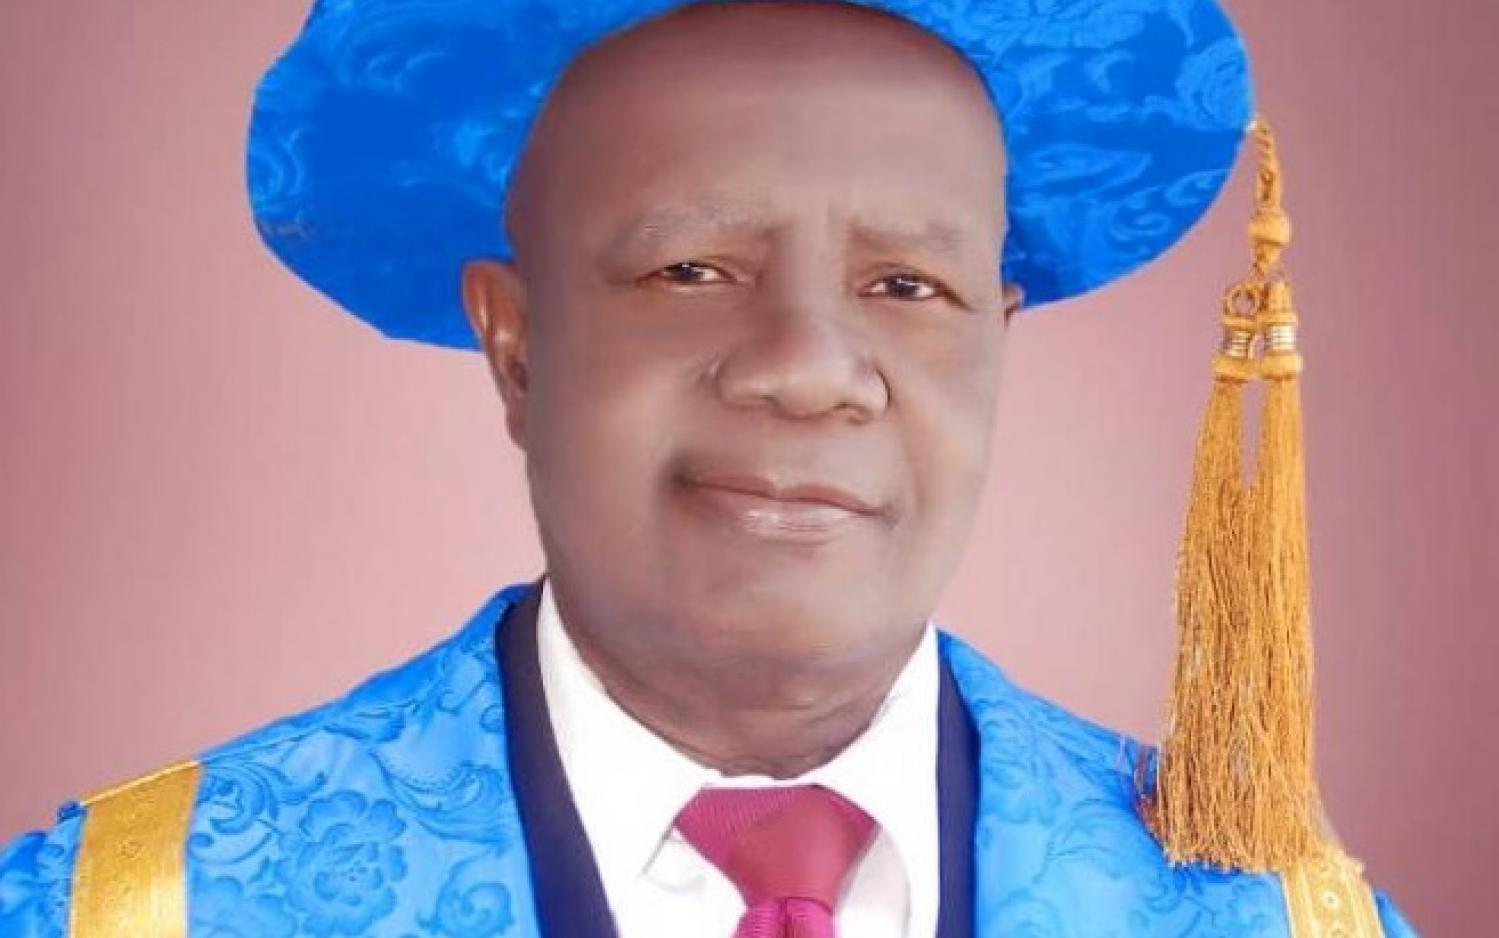 Unijos Acting VC Assures on Campus Security and Cleanliness